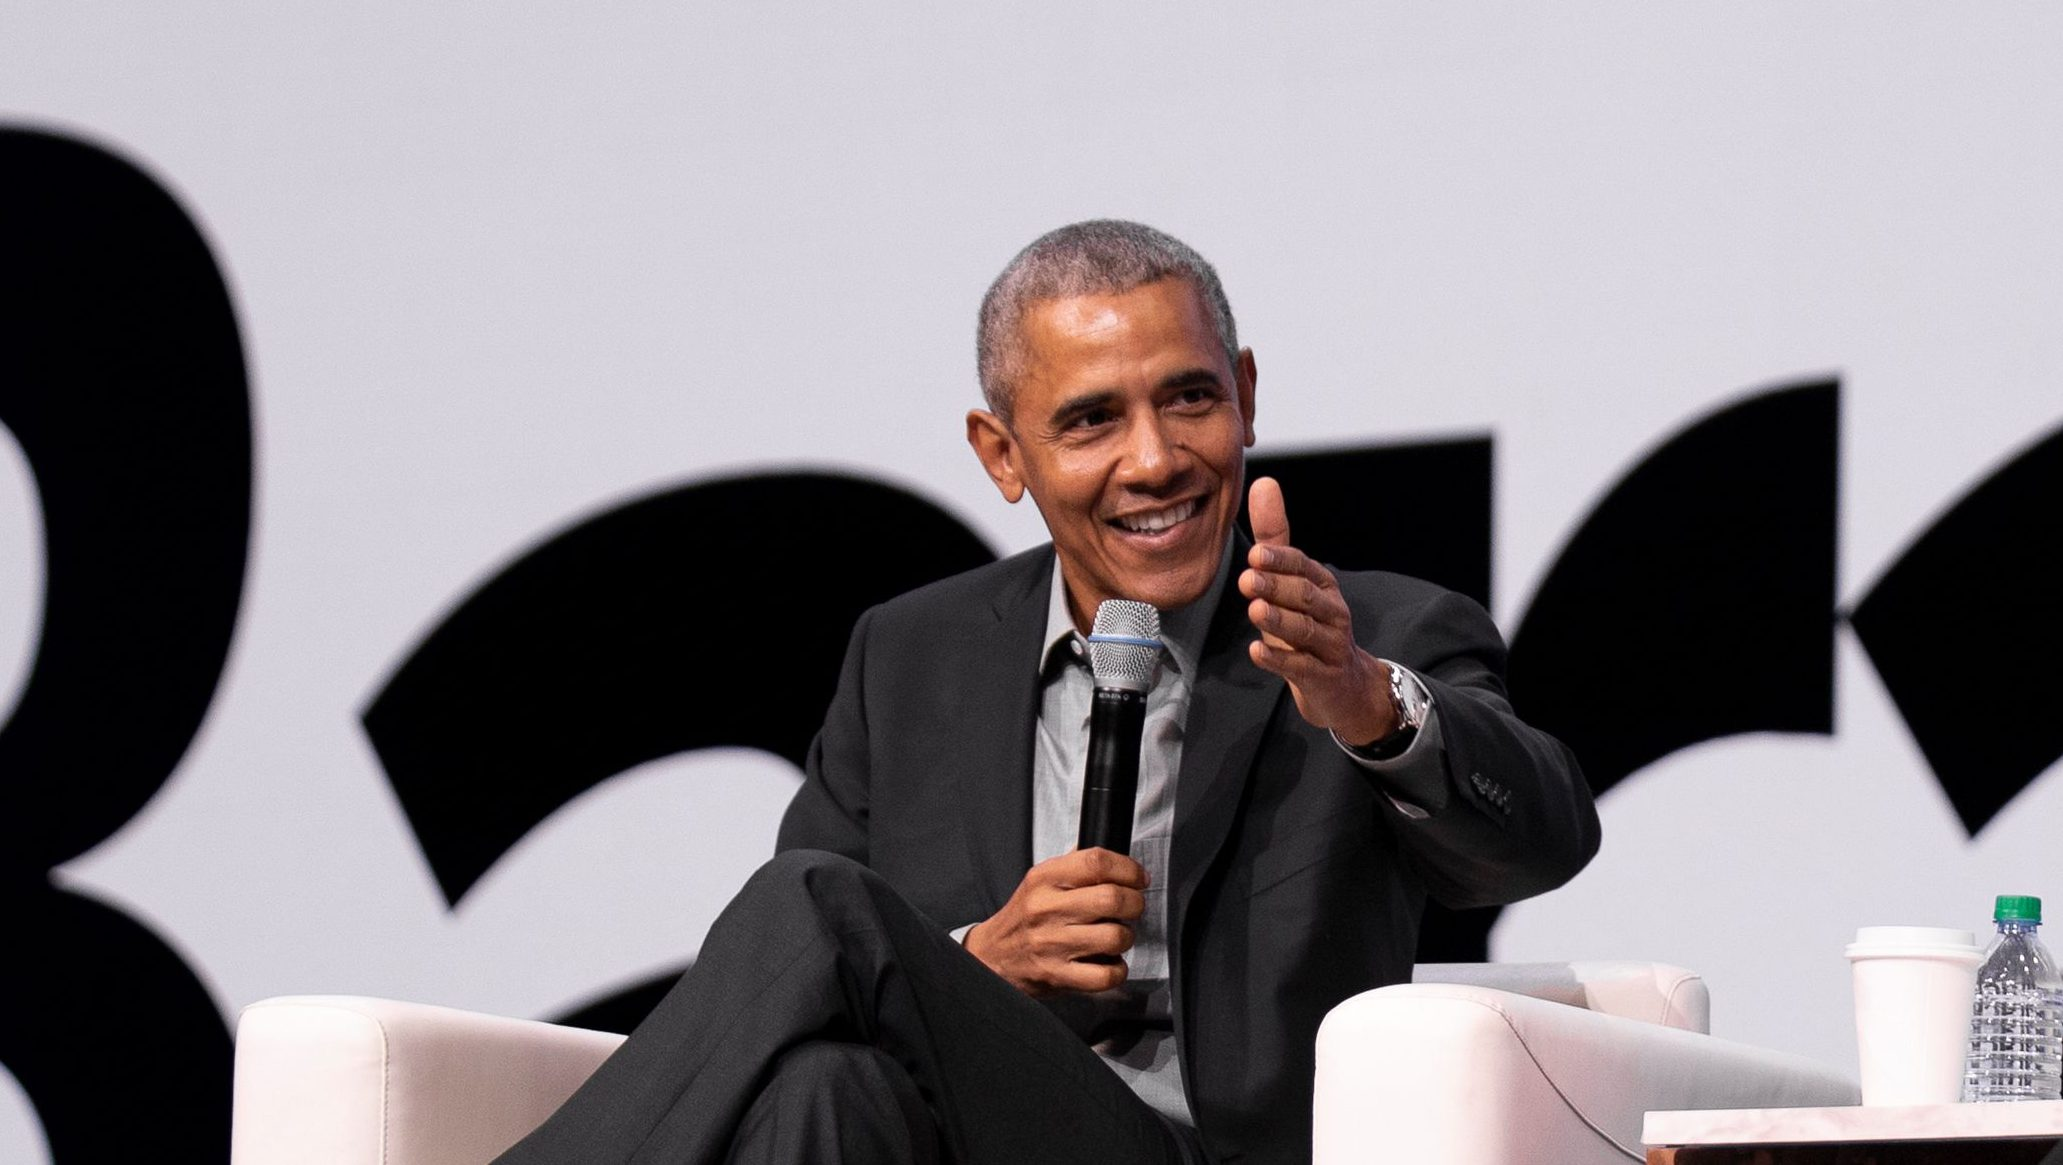 Former president Barack Obama speaks to Qualtrics CEO Ryan Smith at Qualtrics X4 Experience Summit in Salt Lake City, 2019.